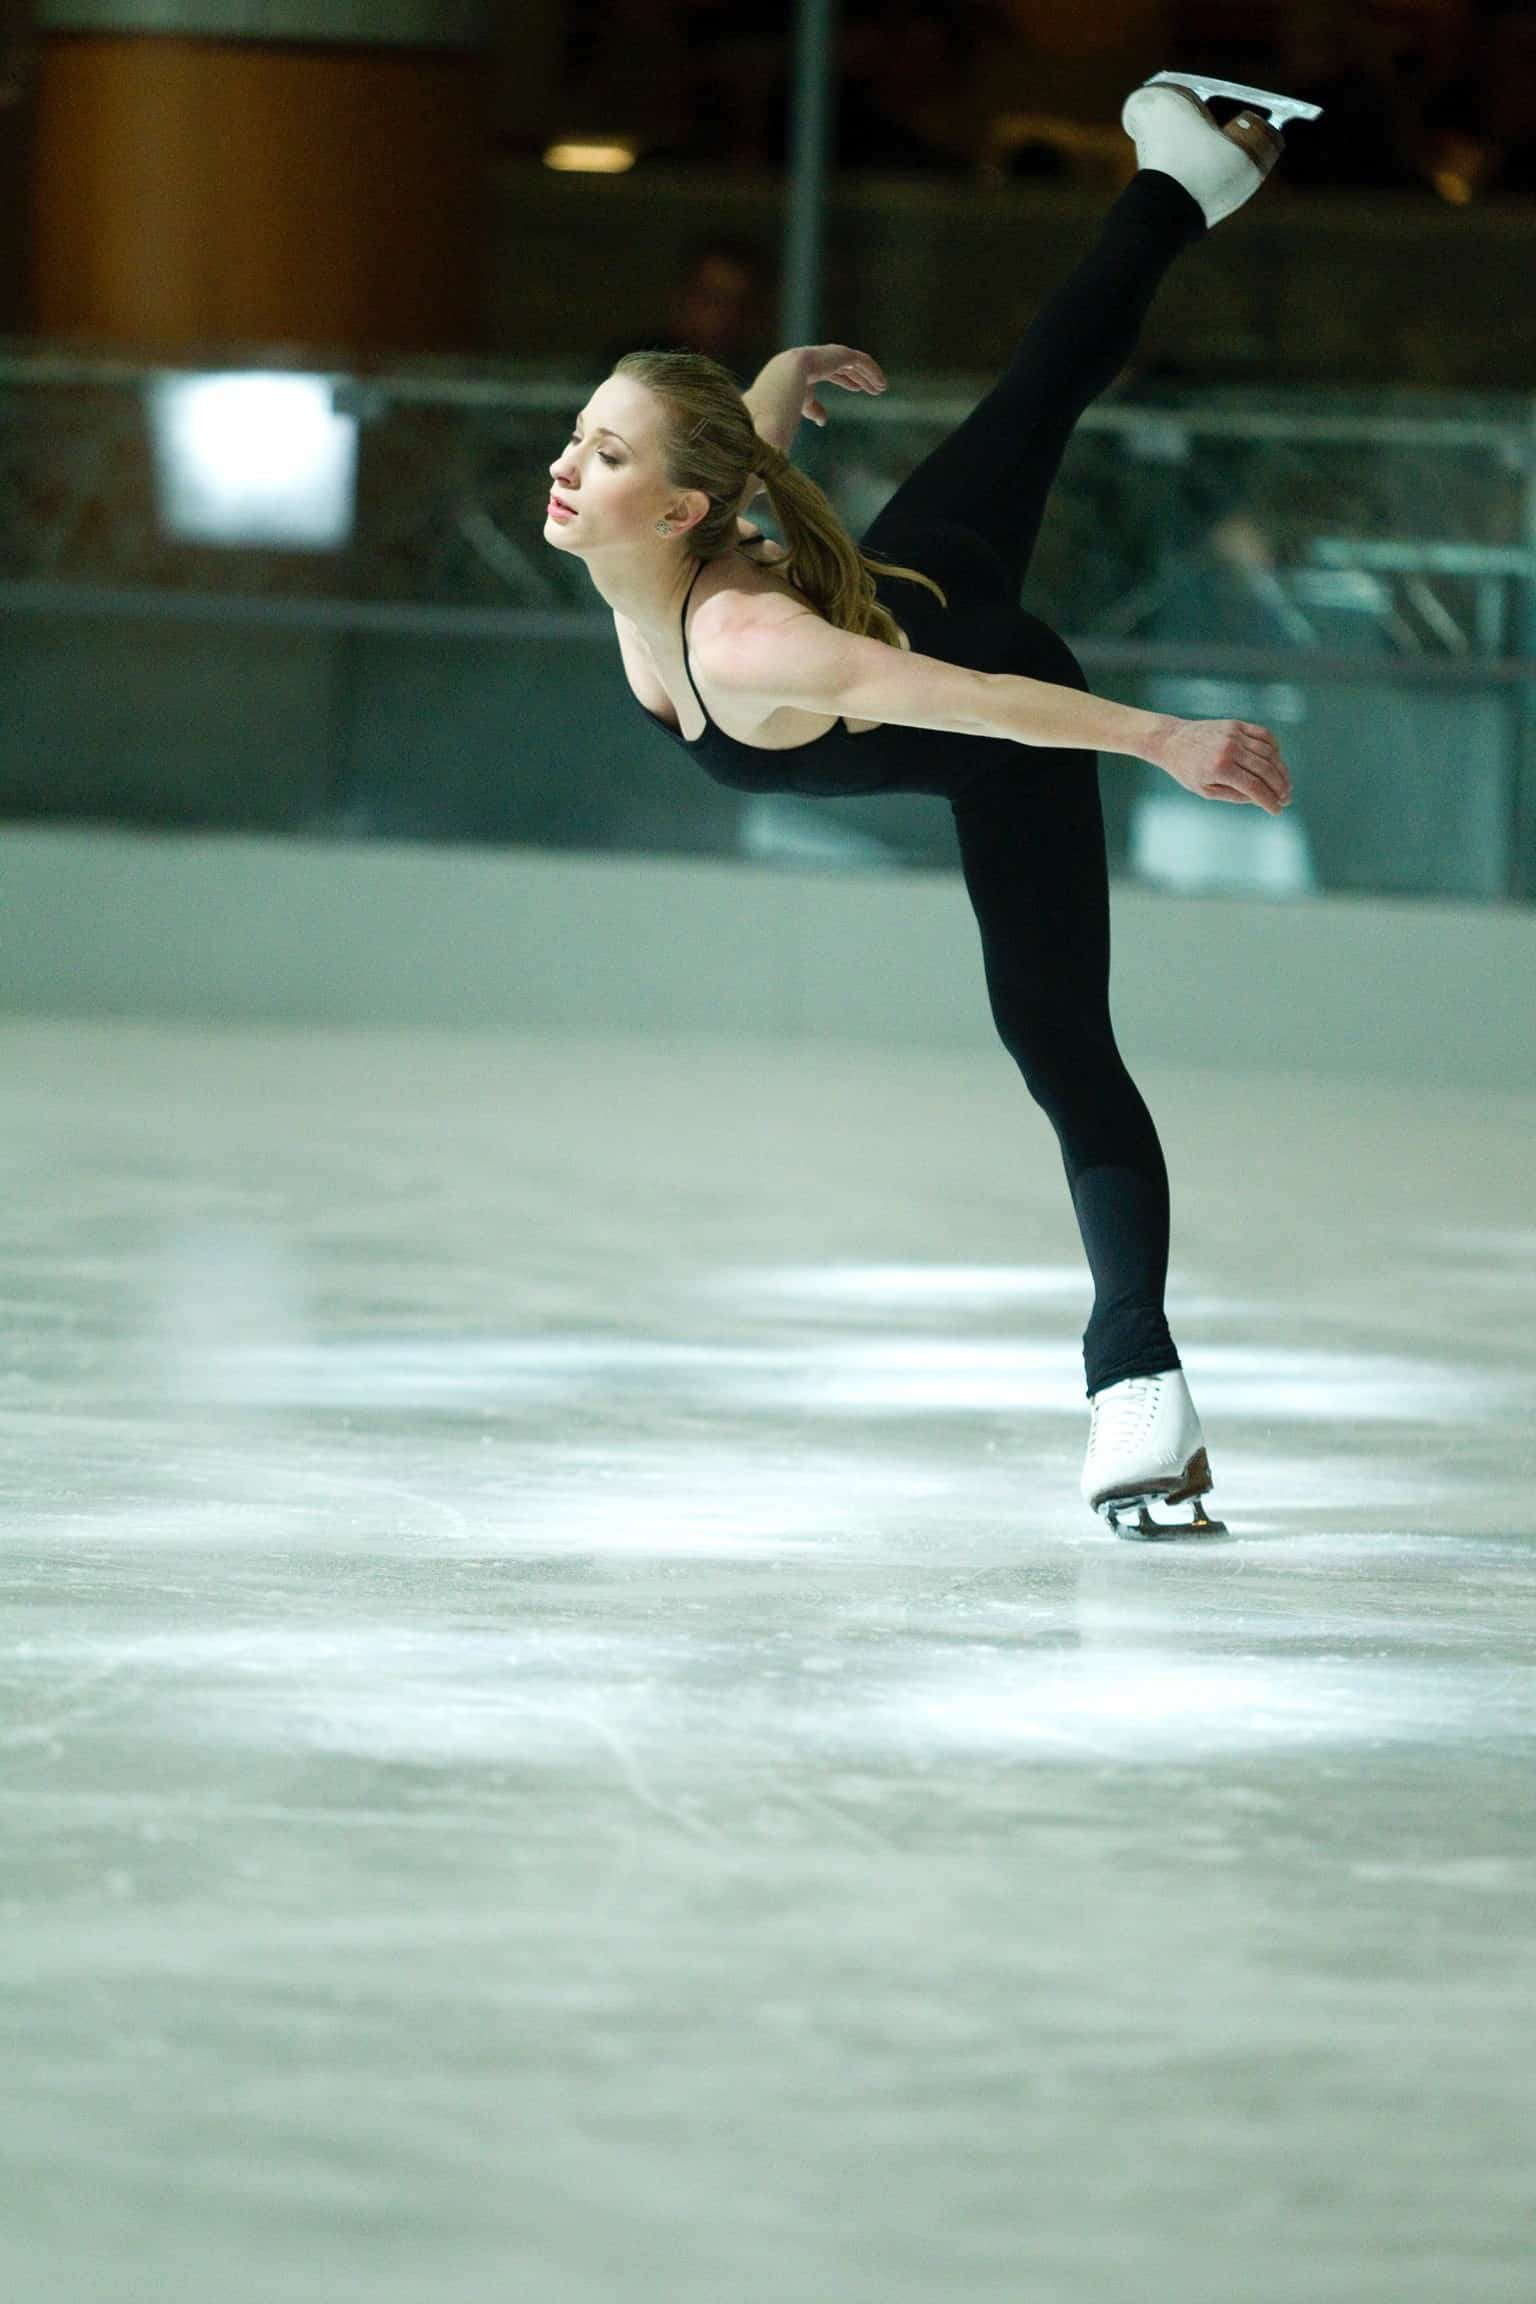 Skating Joannie 2